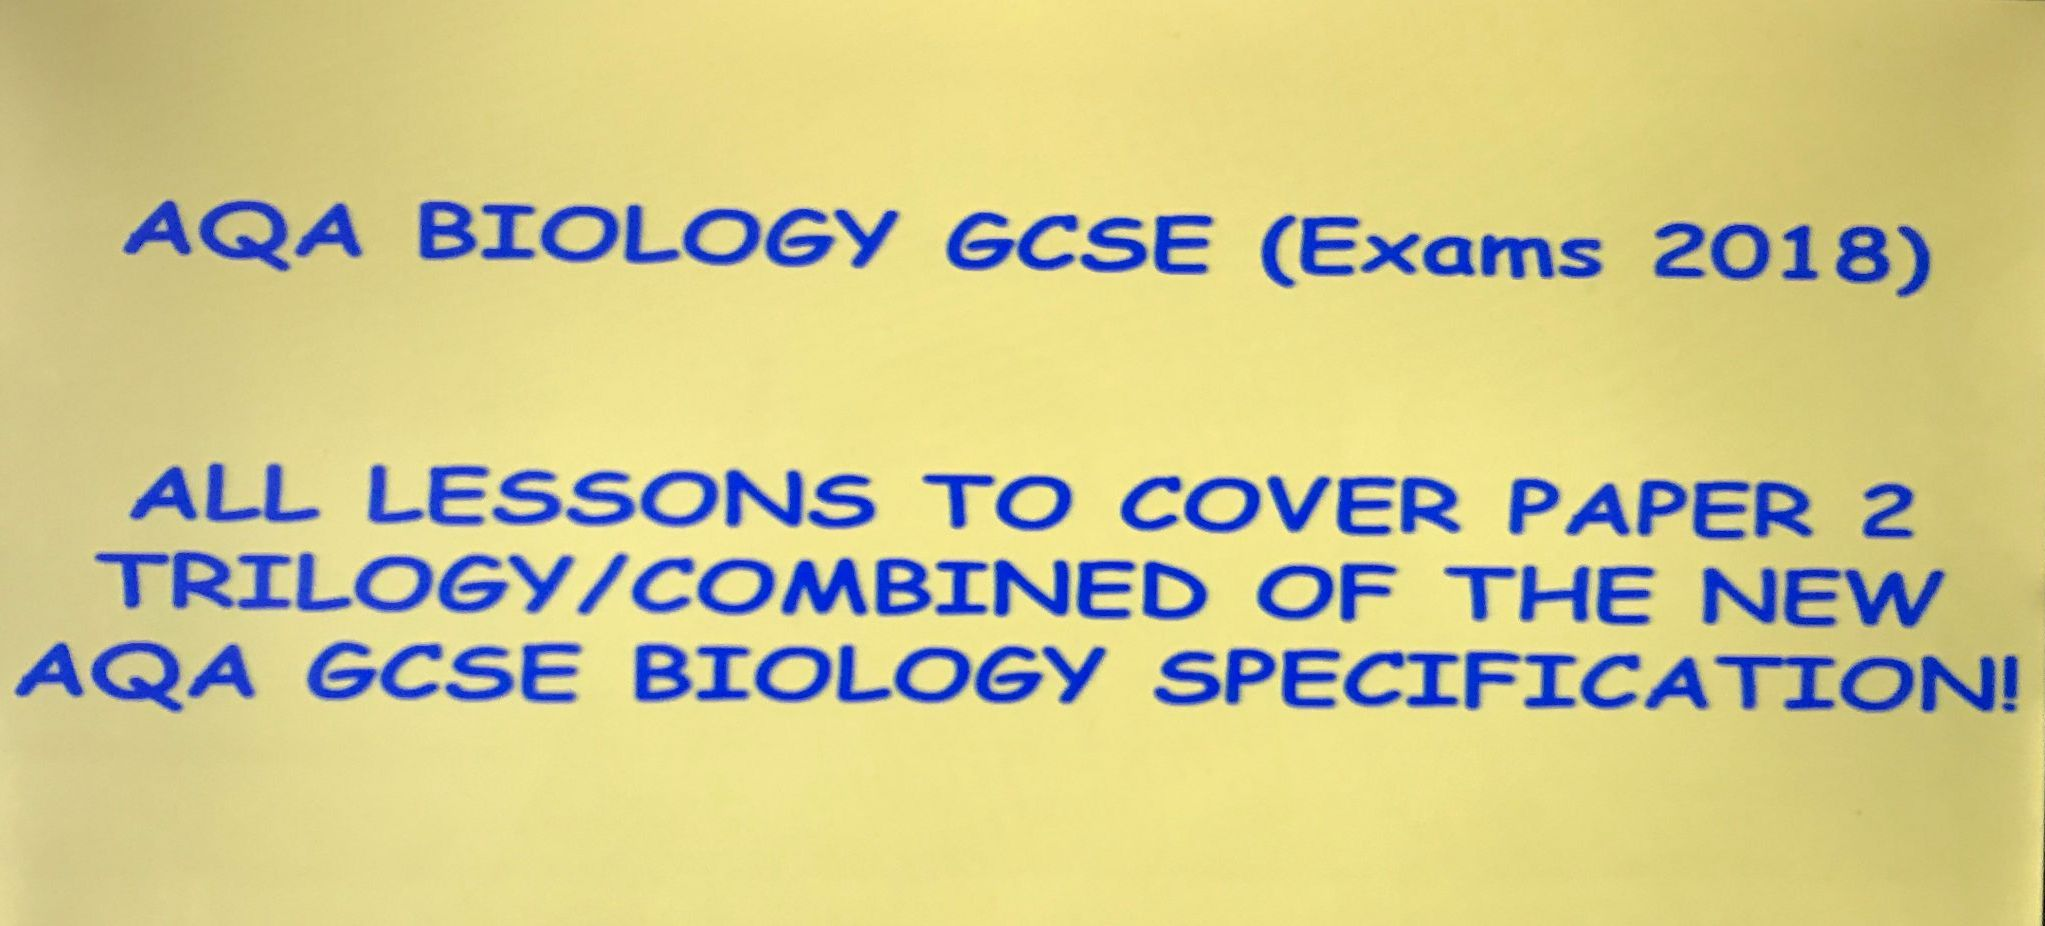 AQA New GCSE Biology (Exams 2018) - Entire Paper 2 combined science resource pack